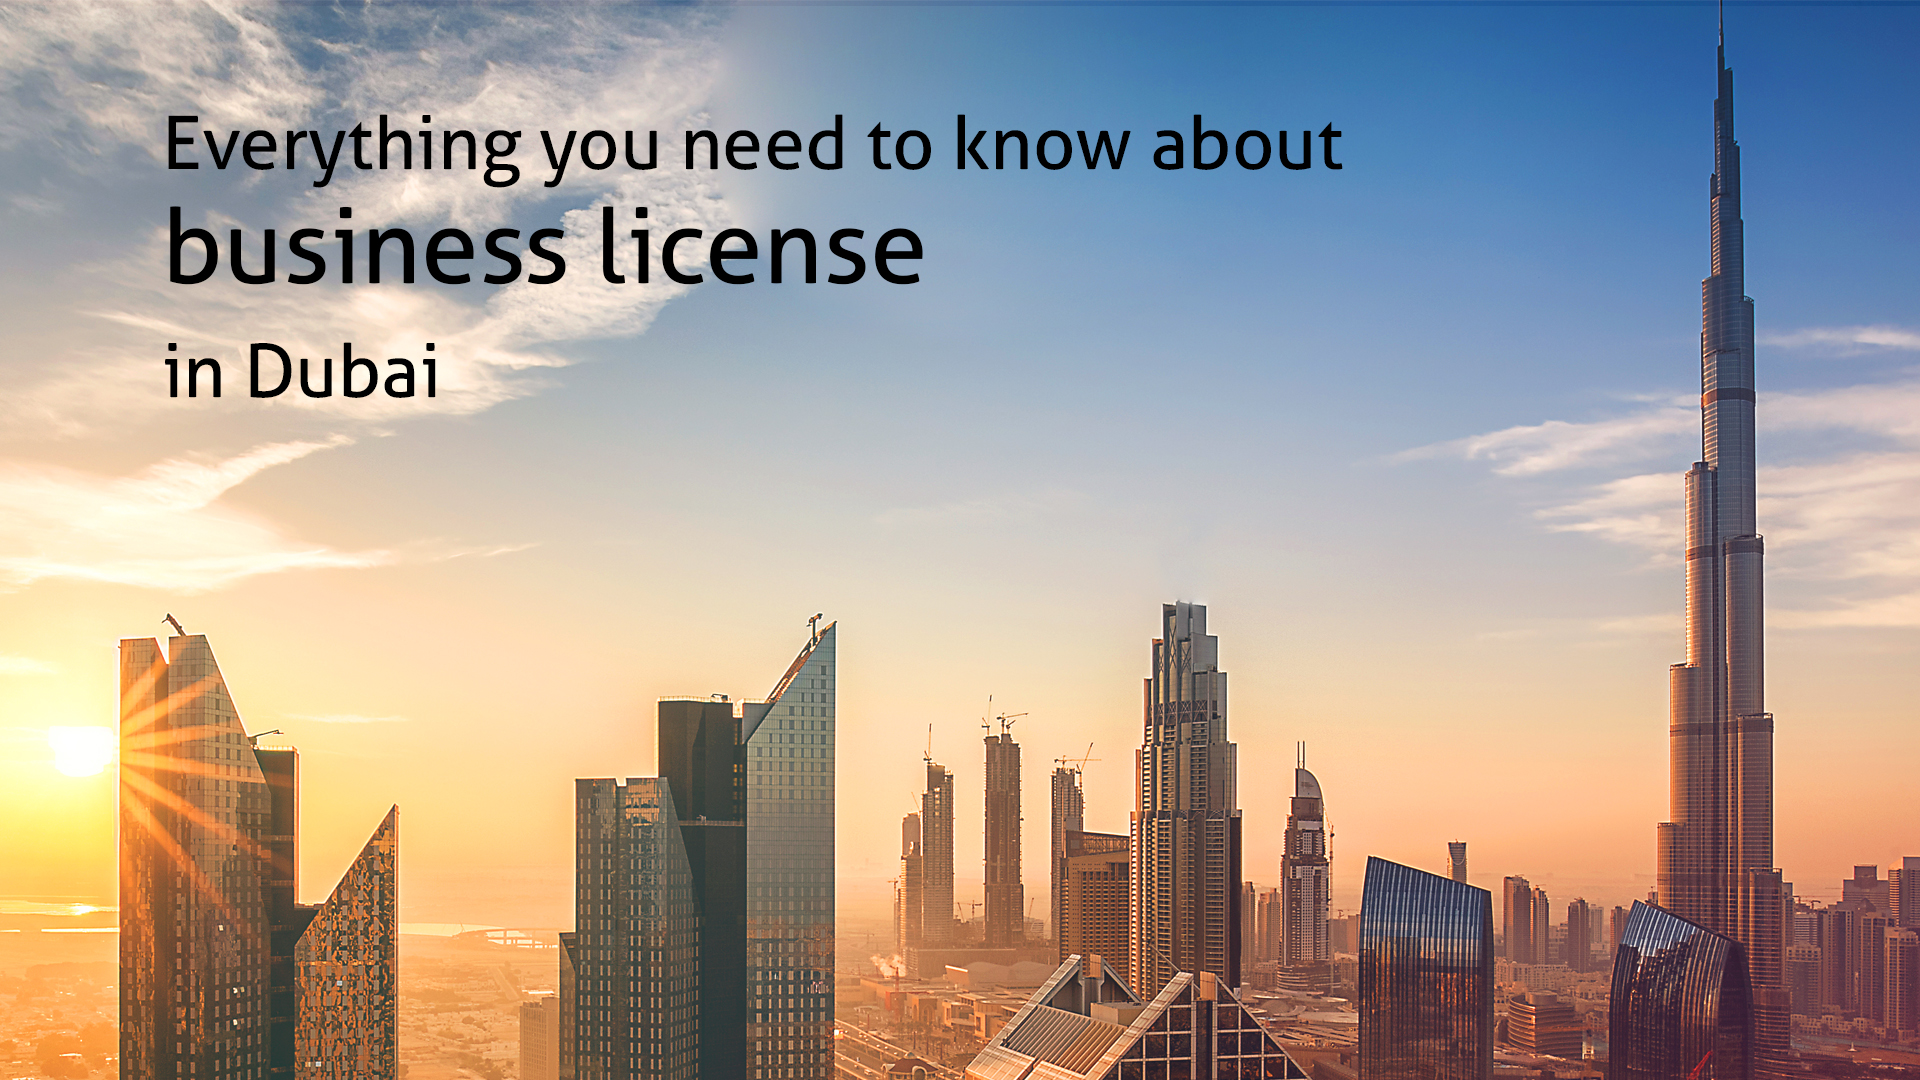 Everything you need to know about business license in Dubai